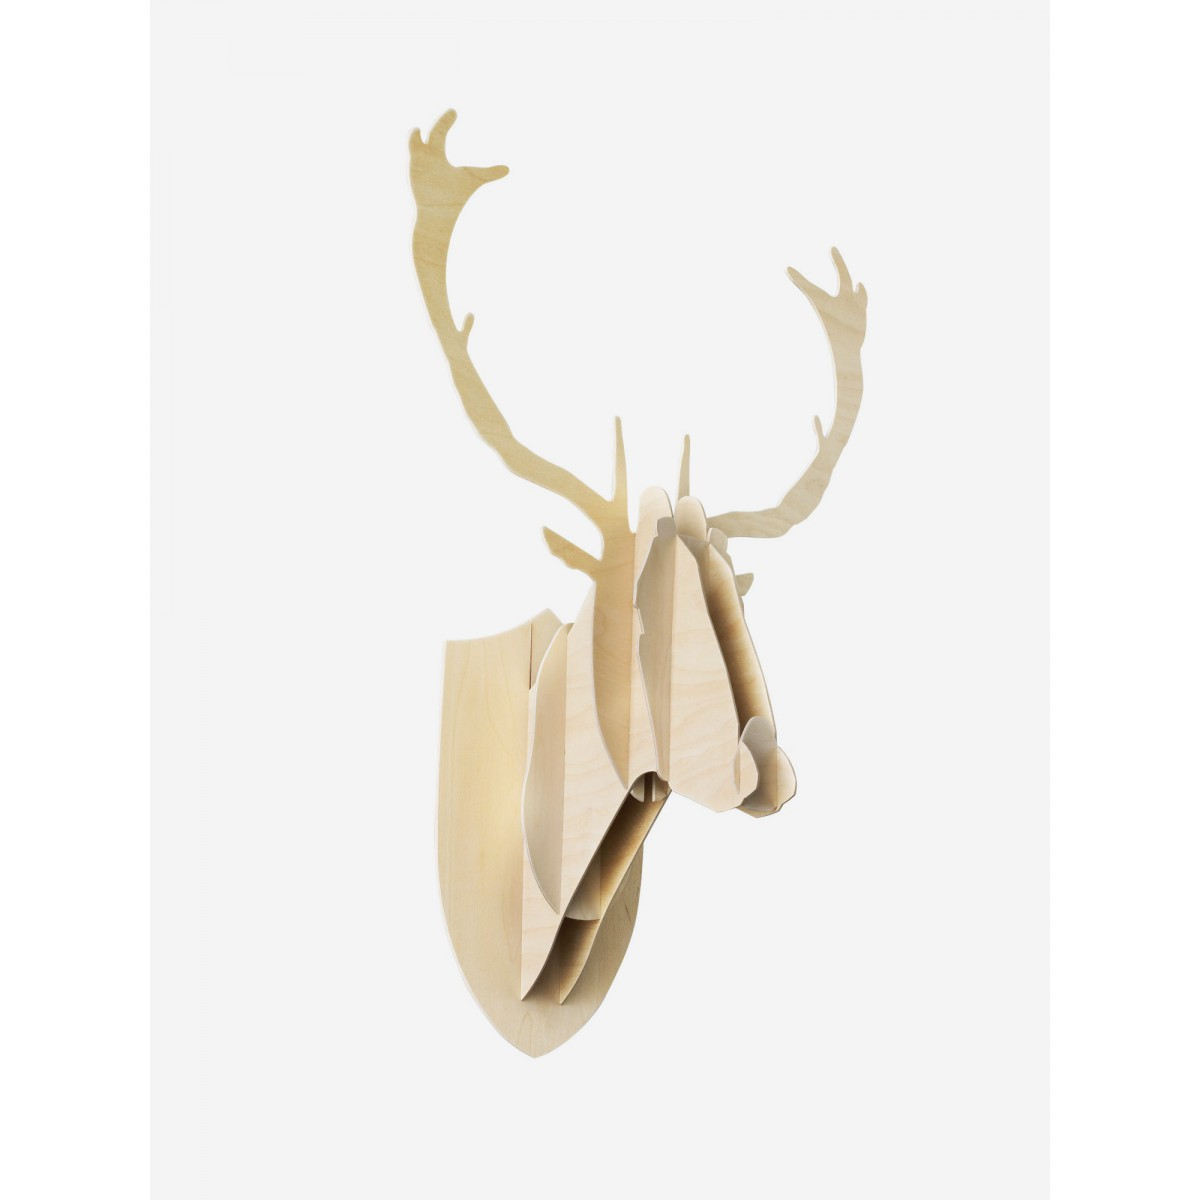 Troph e t te de cerf en bois sign big game - Deco tete de cerf ...